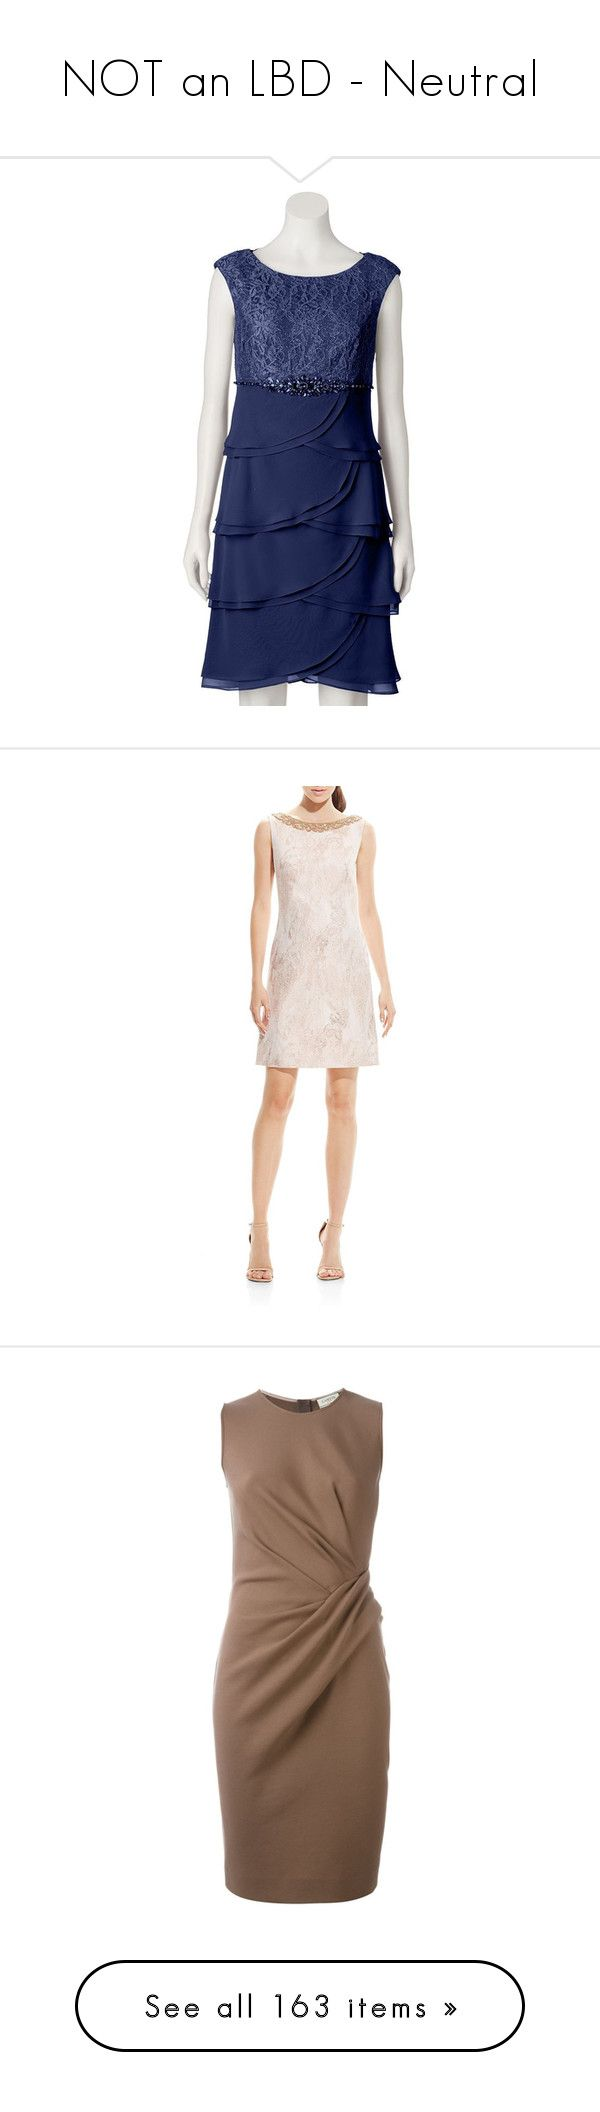 """""""NOT an LBD - Neutral"""" by rebeccalange ❤ liked on Polyvore featuring dresses, blue, formal cocktail dresses, blue dress, lace dress, tulip skirts, formal dresses, rose gold, boat neck shift dress and embellished cocktail dress"""